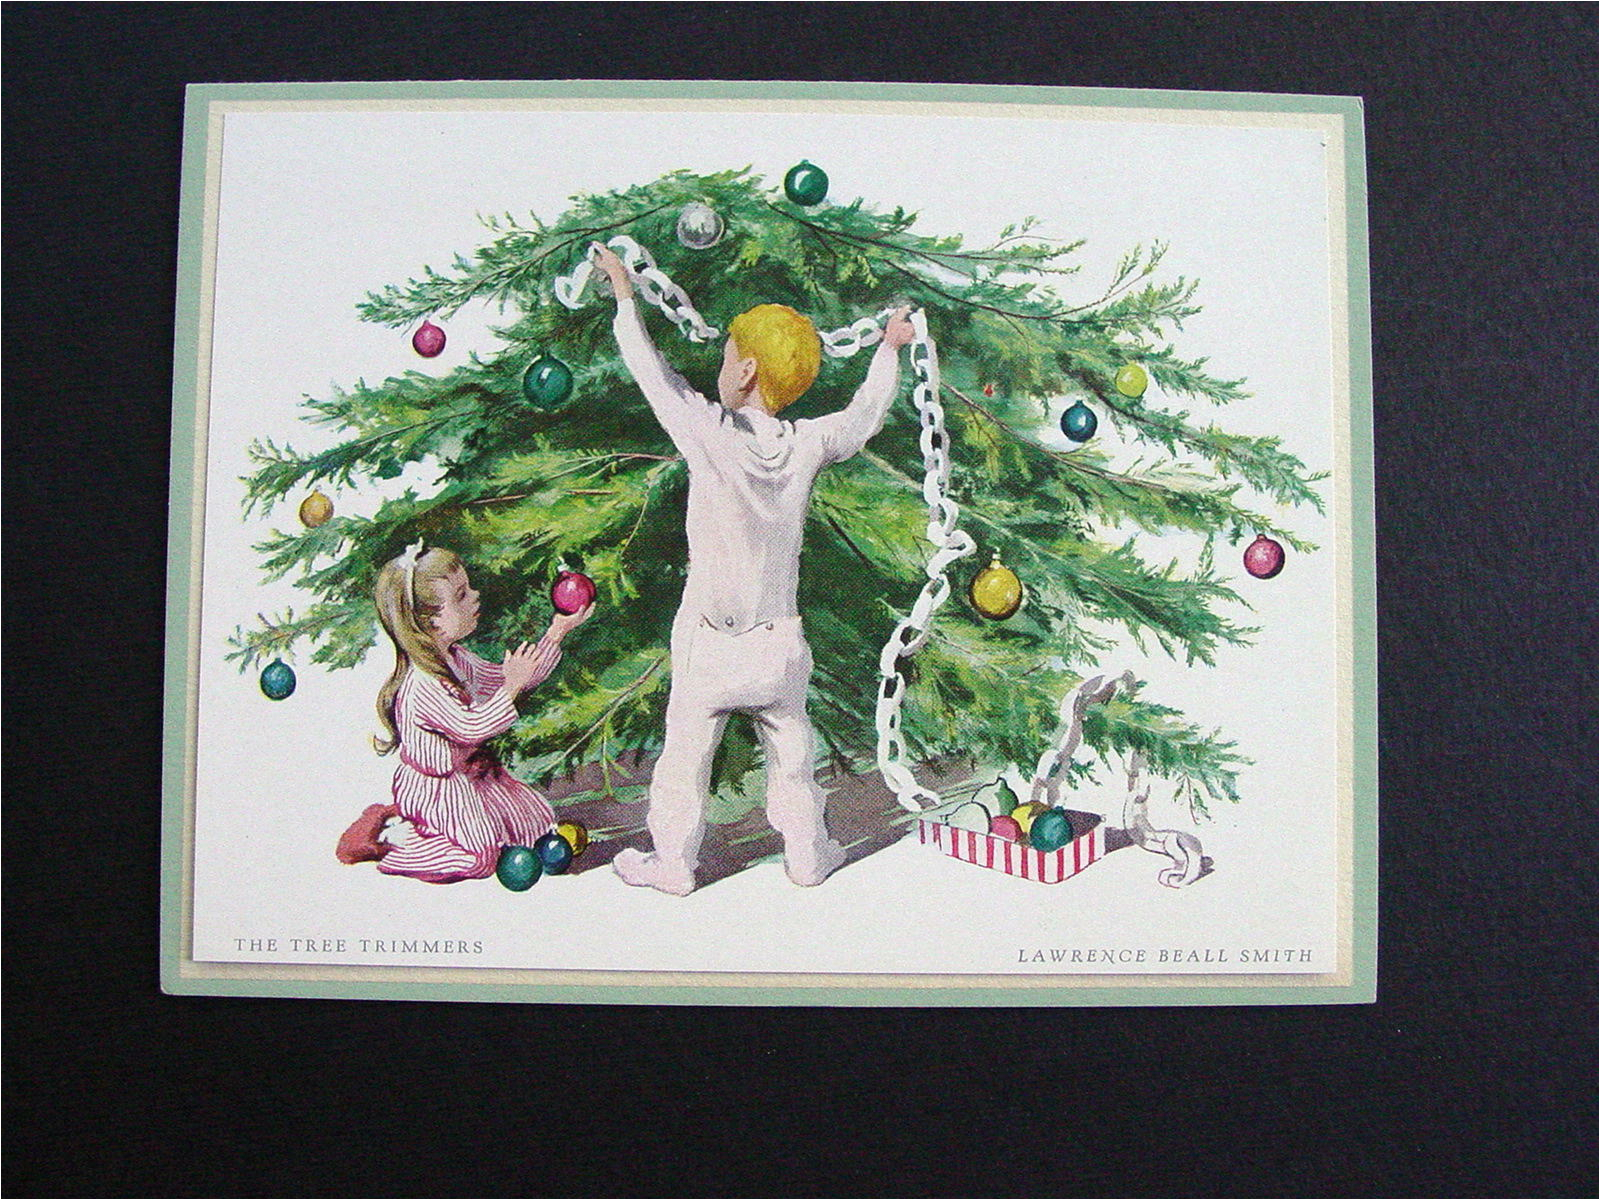 the tree trimmers by lawrence beall smith vintage aaa